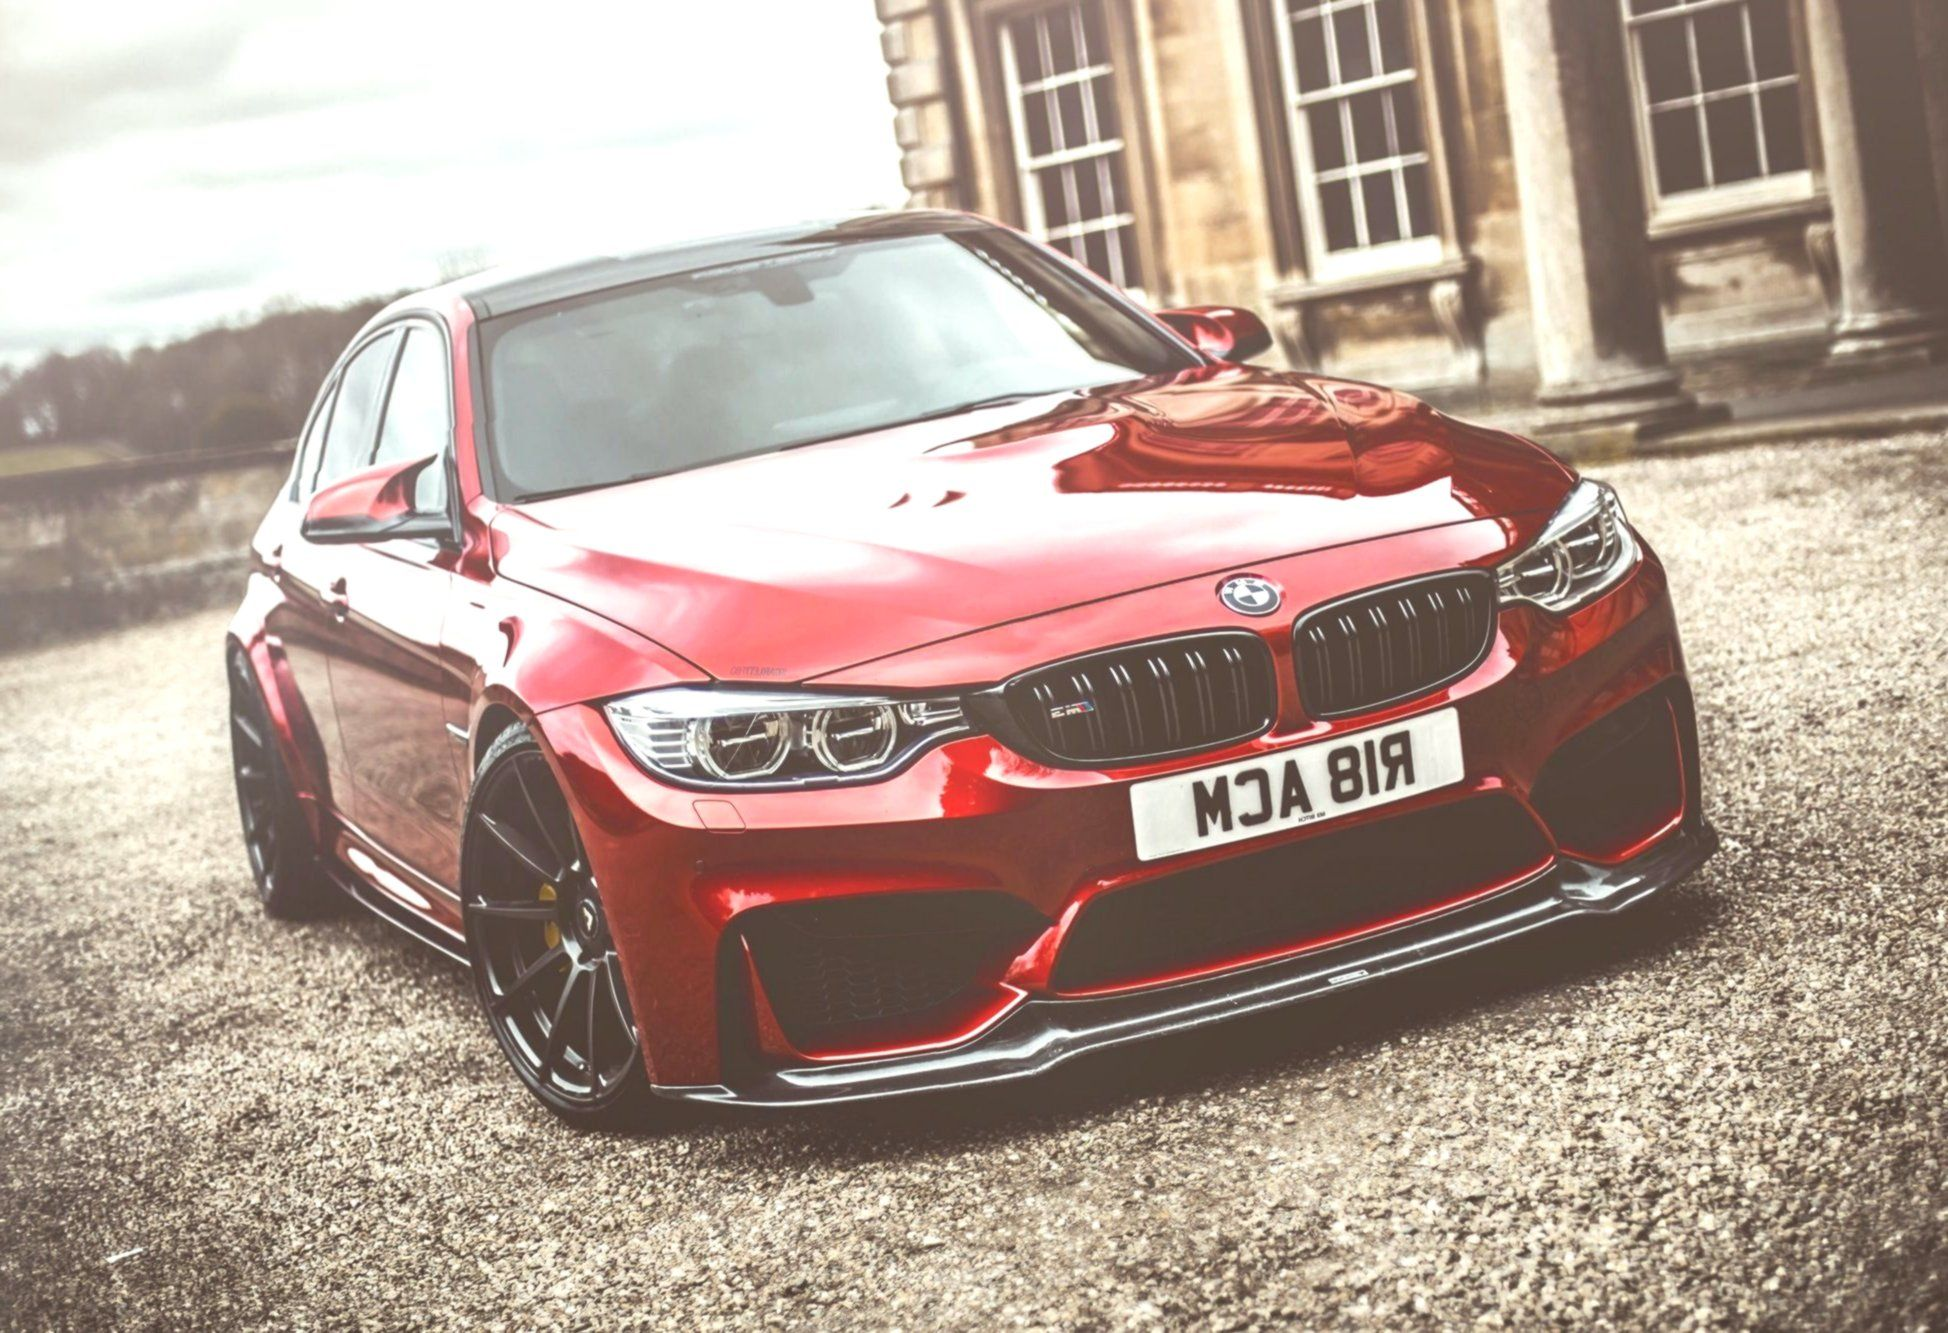 The Peculiar Red Paint Of The Custom Made Bmw 3 Series Magnifies The Crowd Custom Bmw Bmw 3 Series Bmw